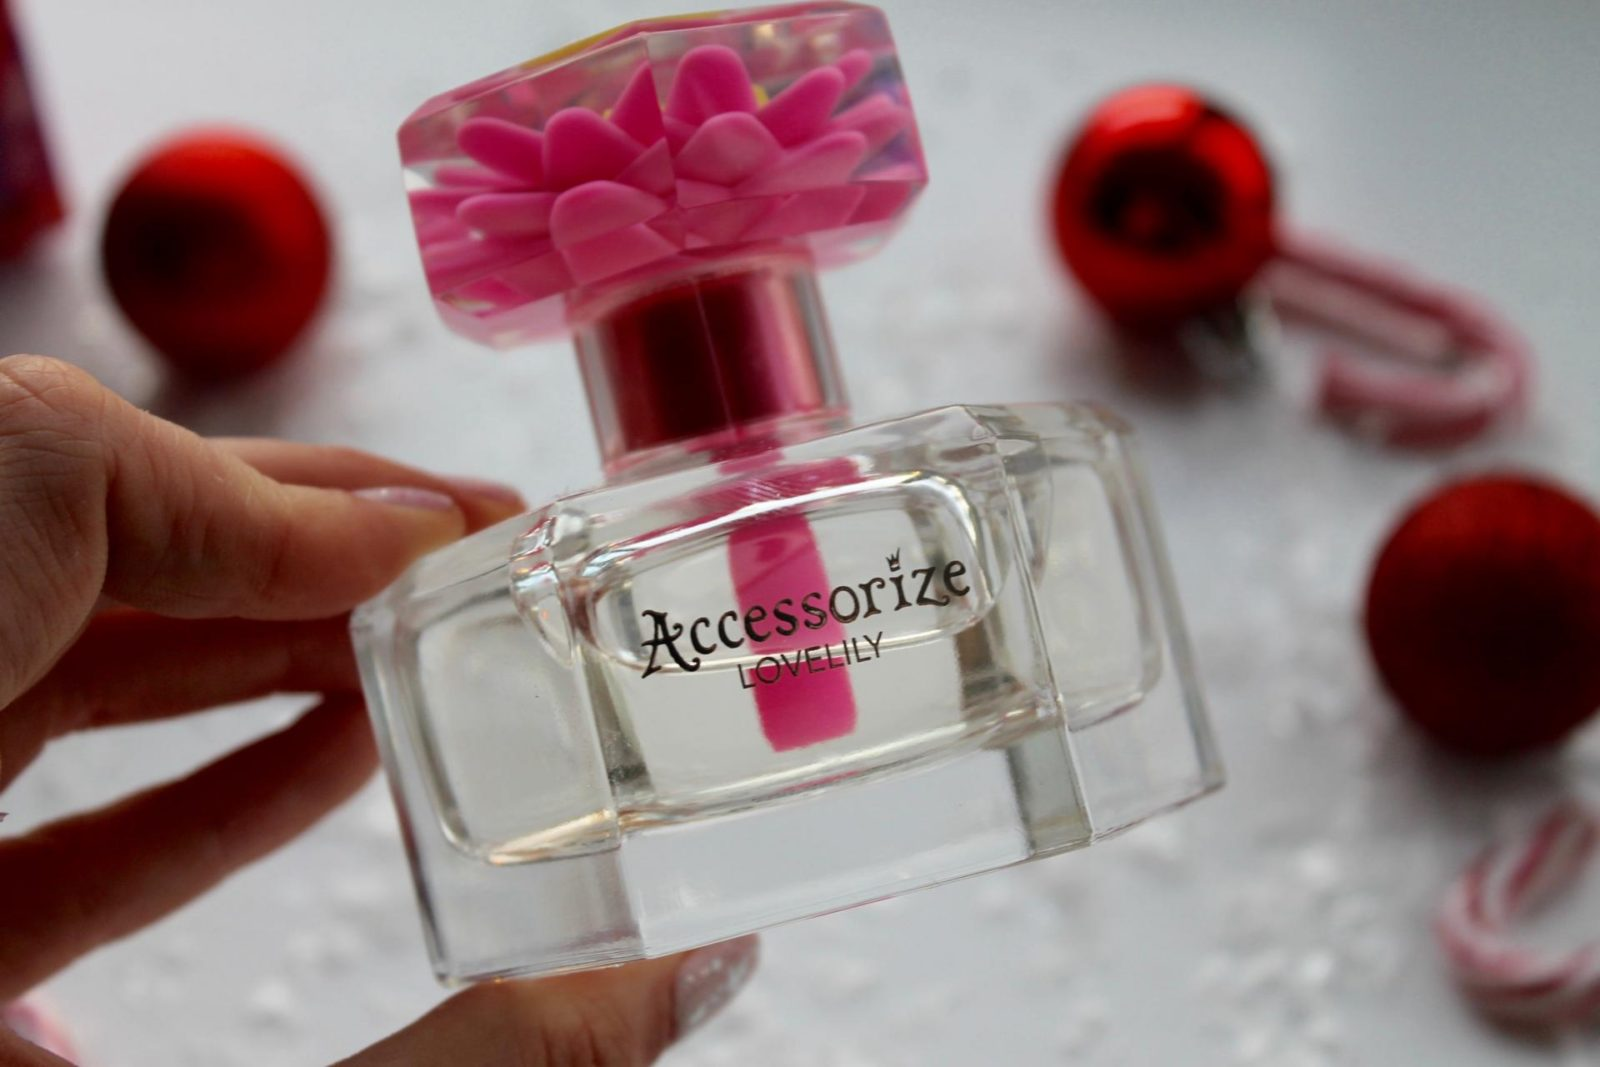 accessorize-lovelily-perfume-5